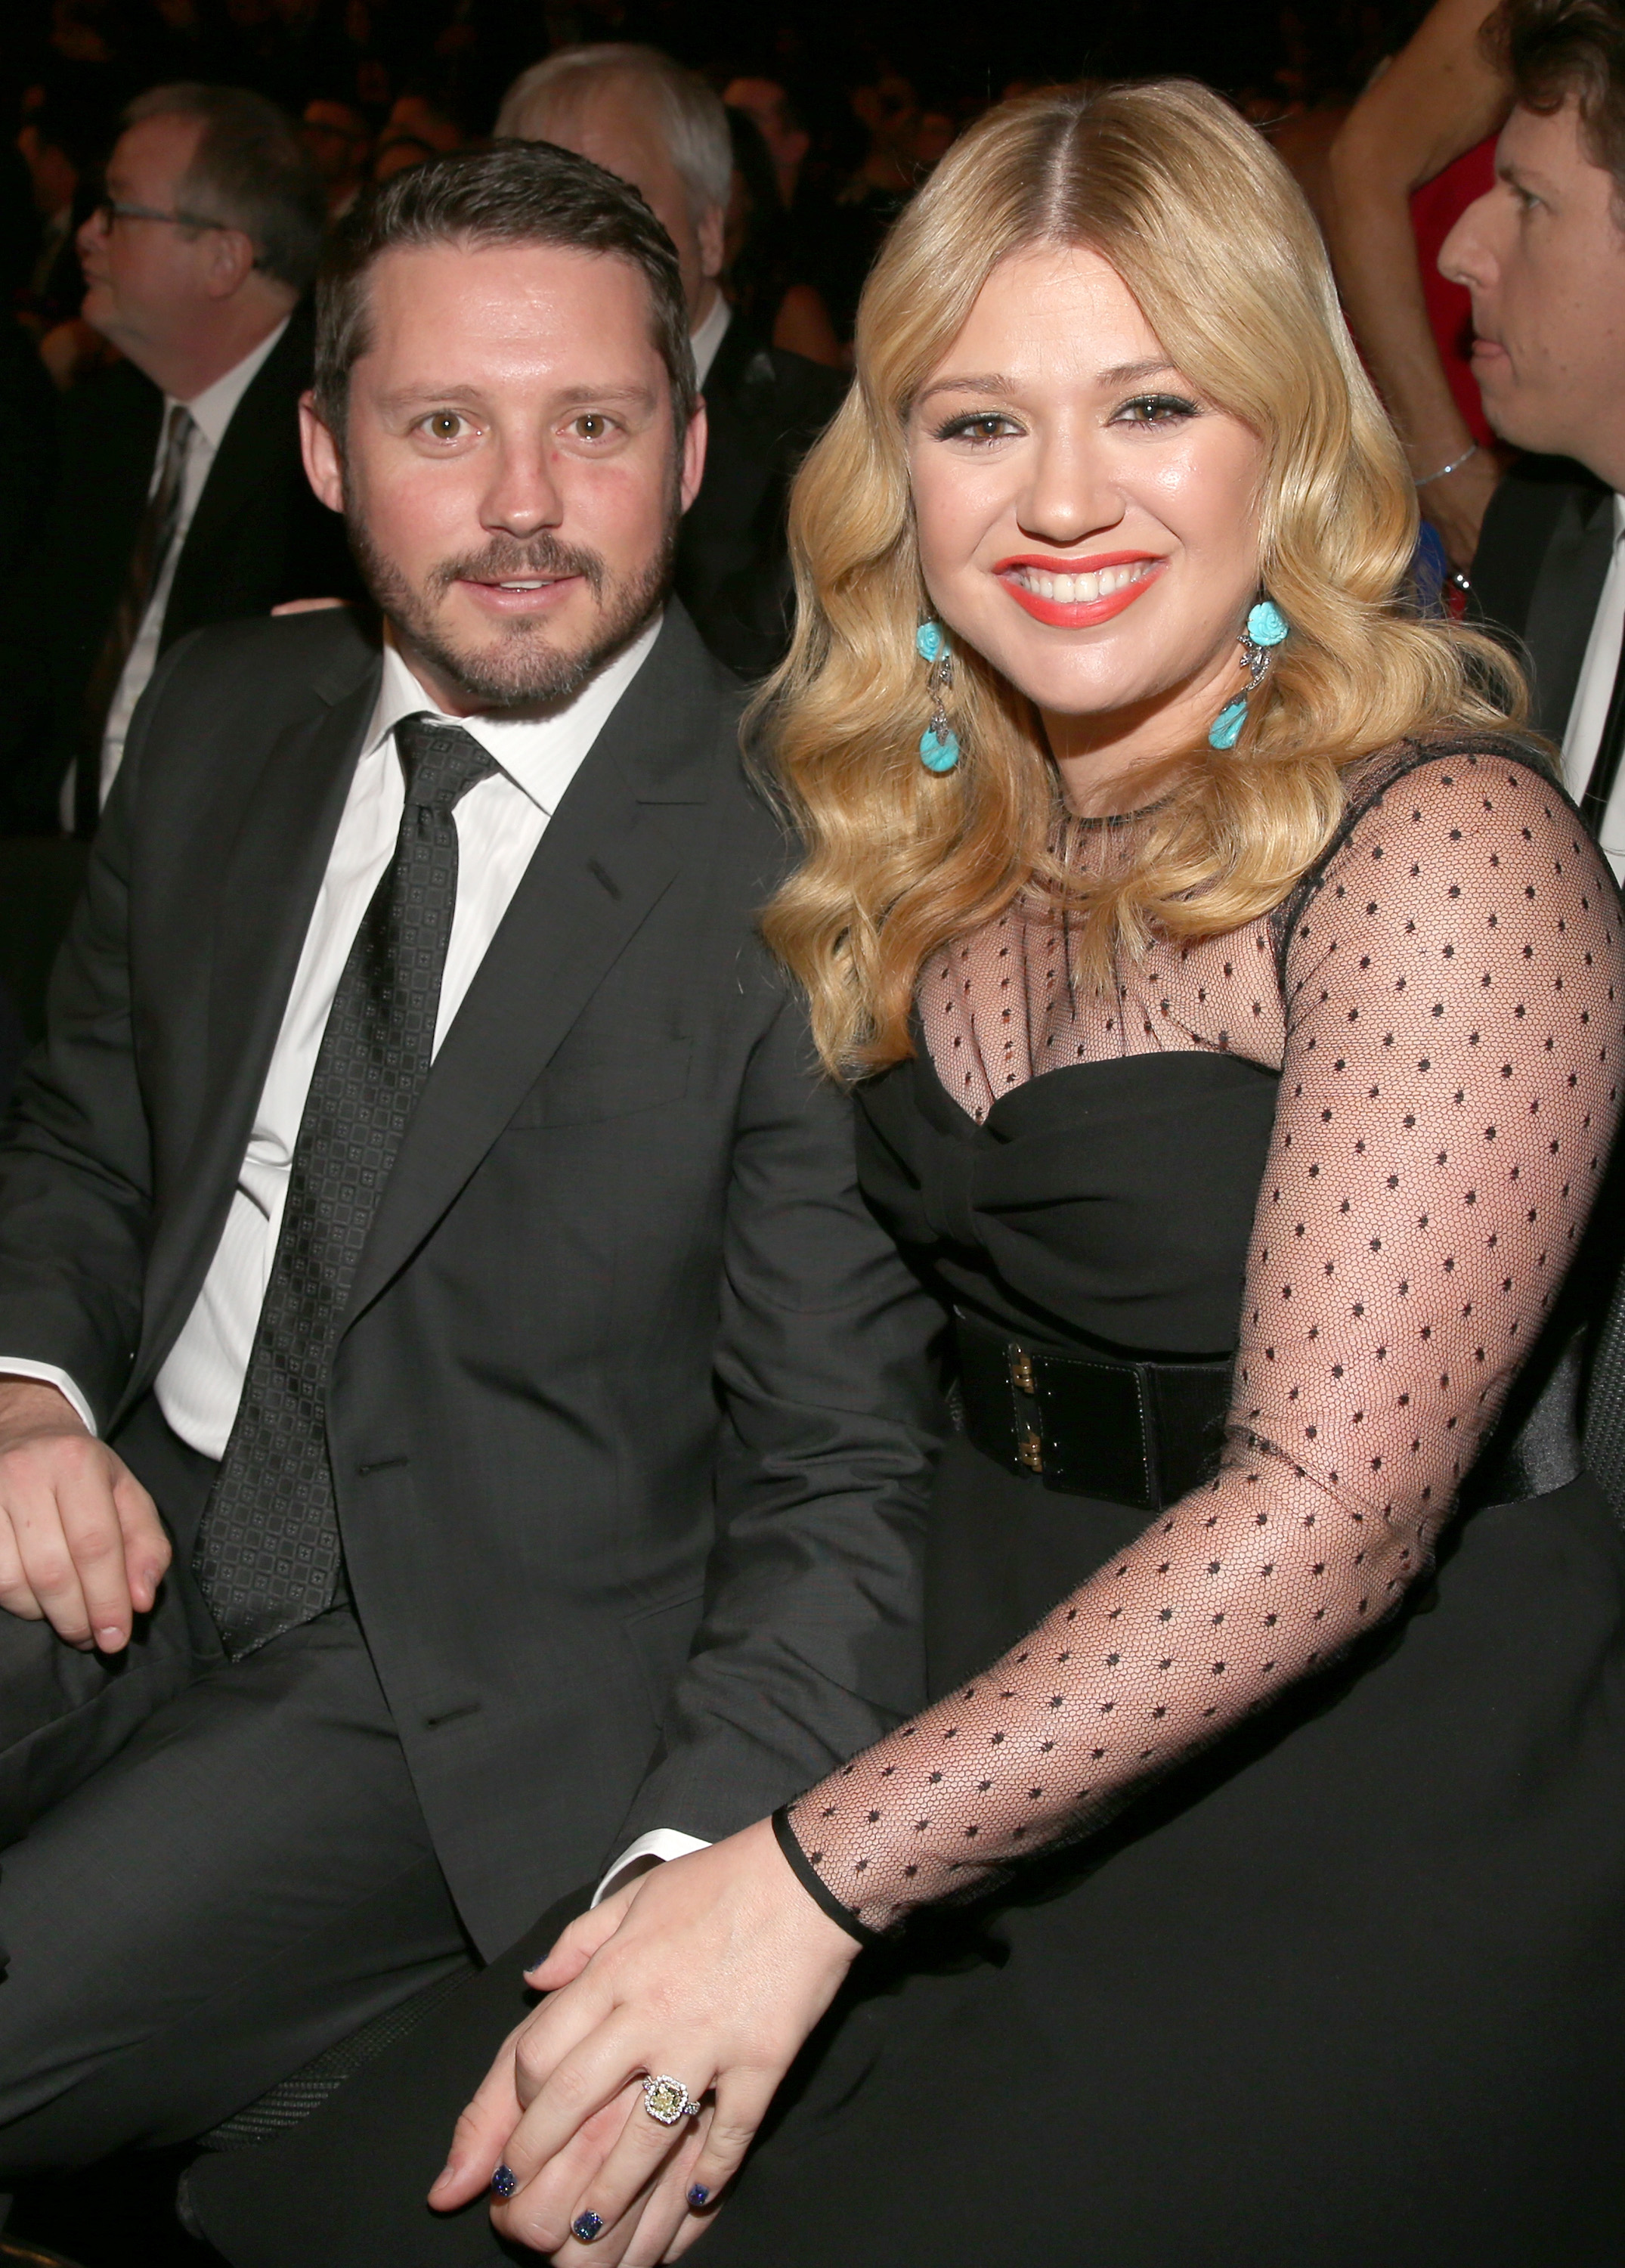 Who is kelly clarkson married to now